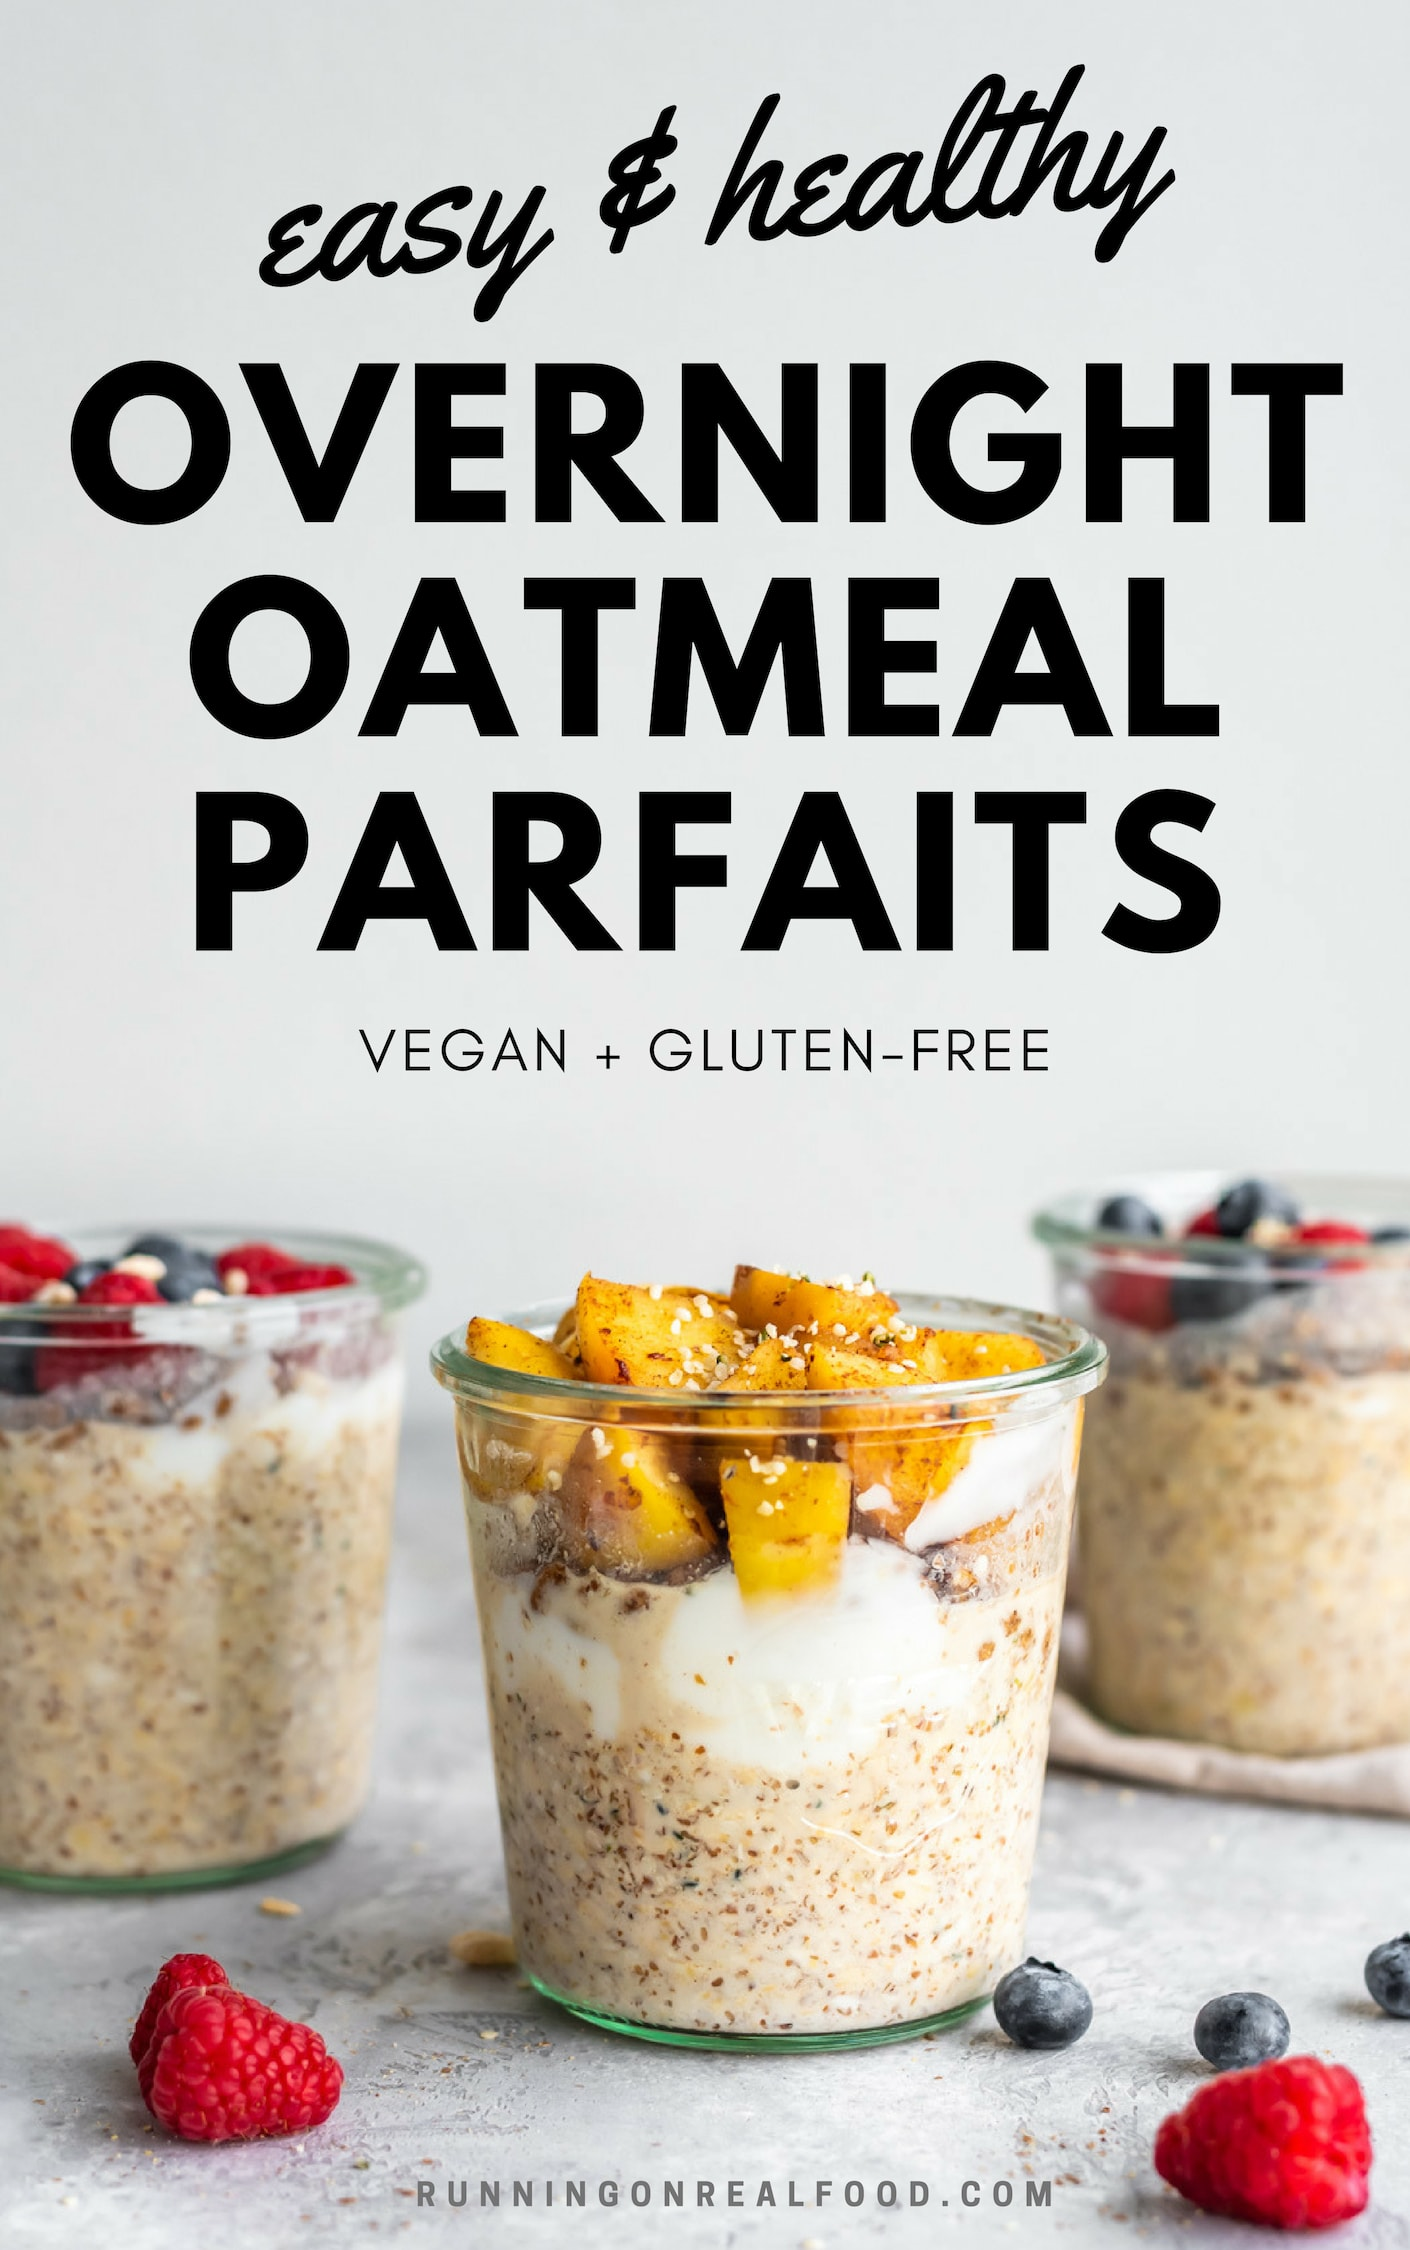 Easy, healthy and filling overnight oatmeal parfaits with yogurt and fresh berries or cinnamon apples. This recipe is vegan, gluten-free, sugar-free and great for meal prep.